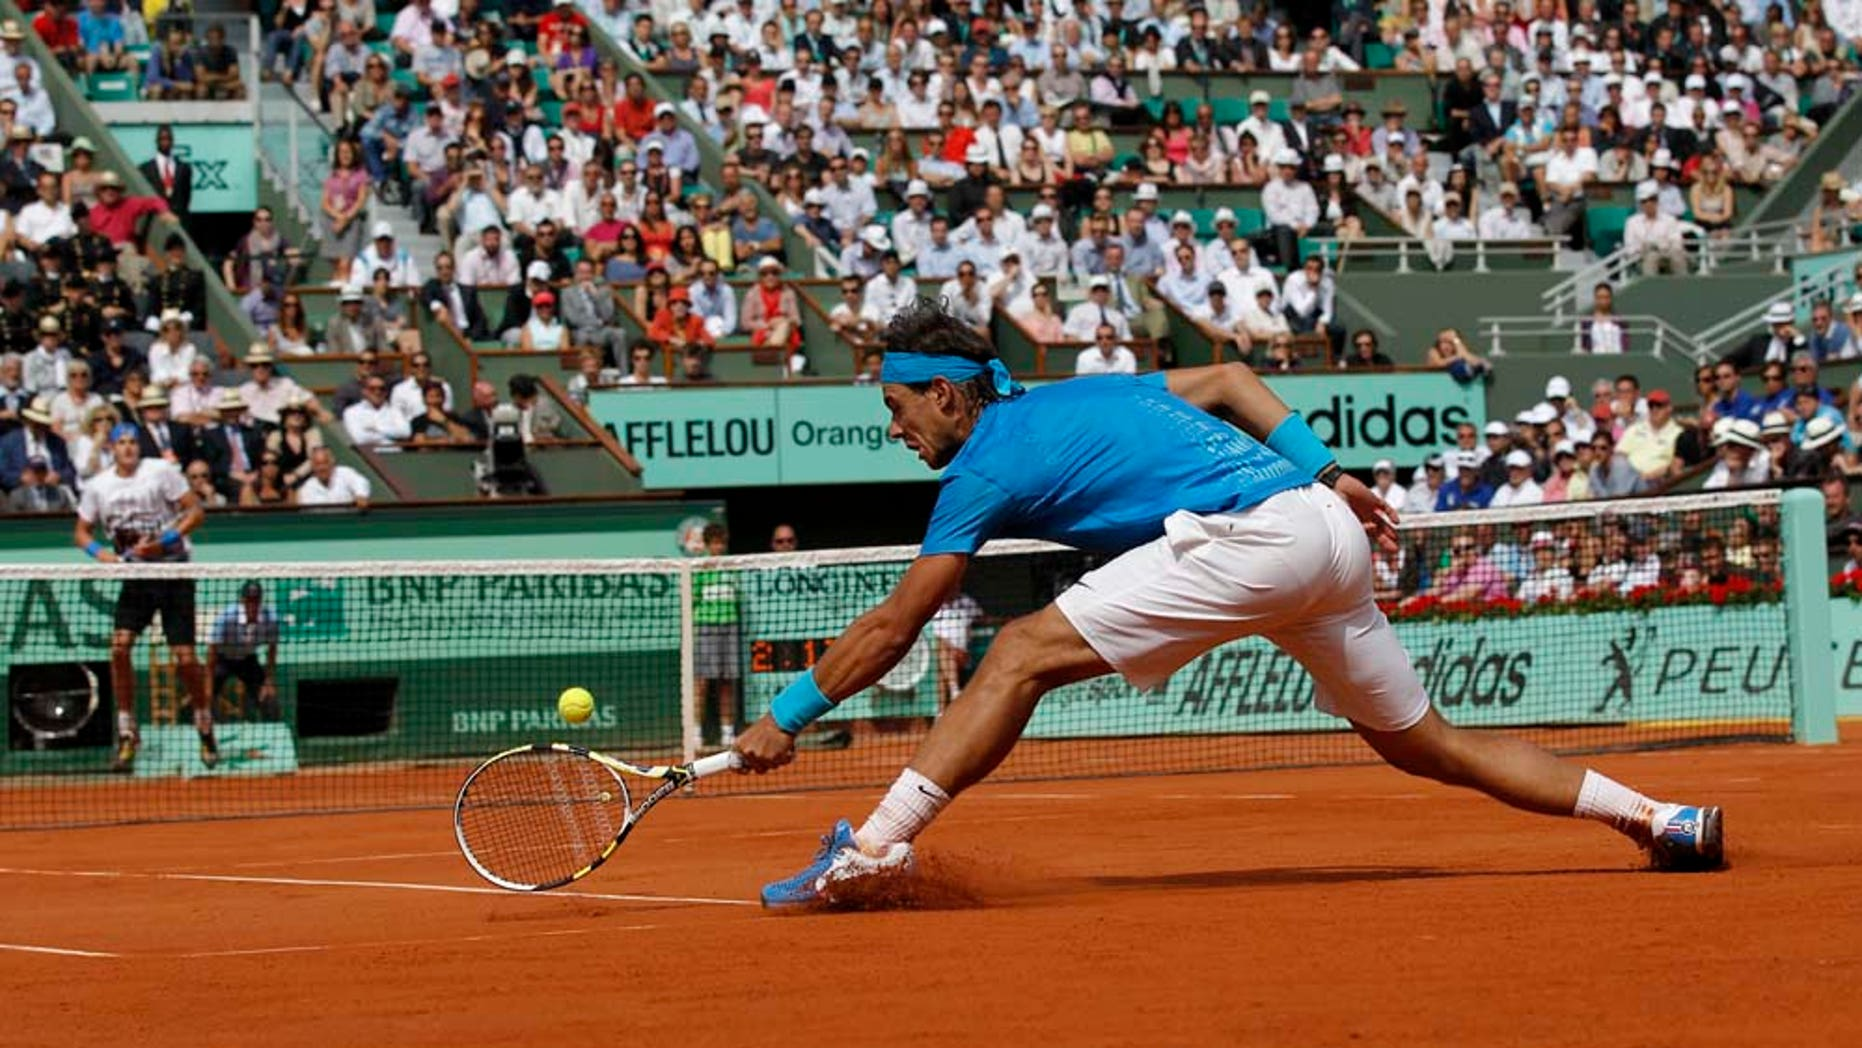 Defending champion Spain's Rafael Nadal returns the ball to USA's John Isner during their first round match of the French Open tennis tournament, at  the Roland Garros stadium in Paris, Tuesday, May 24, 2011. (AP Photo/Christophe Ena)